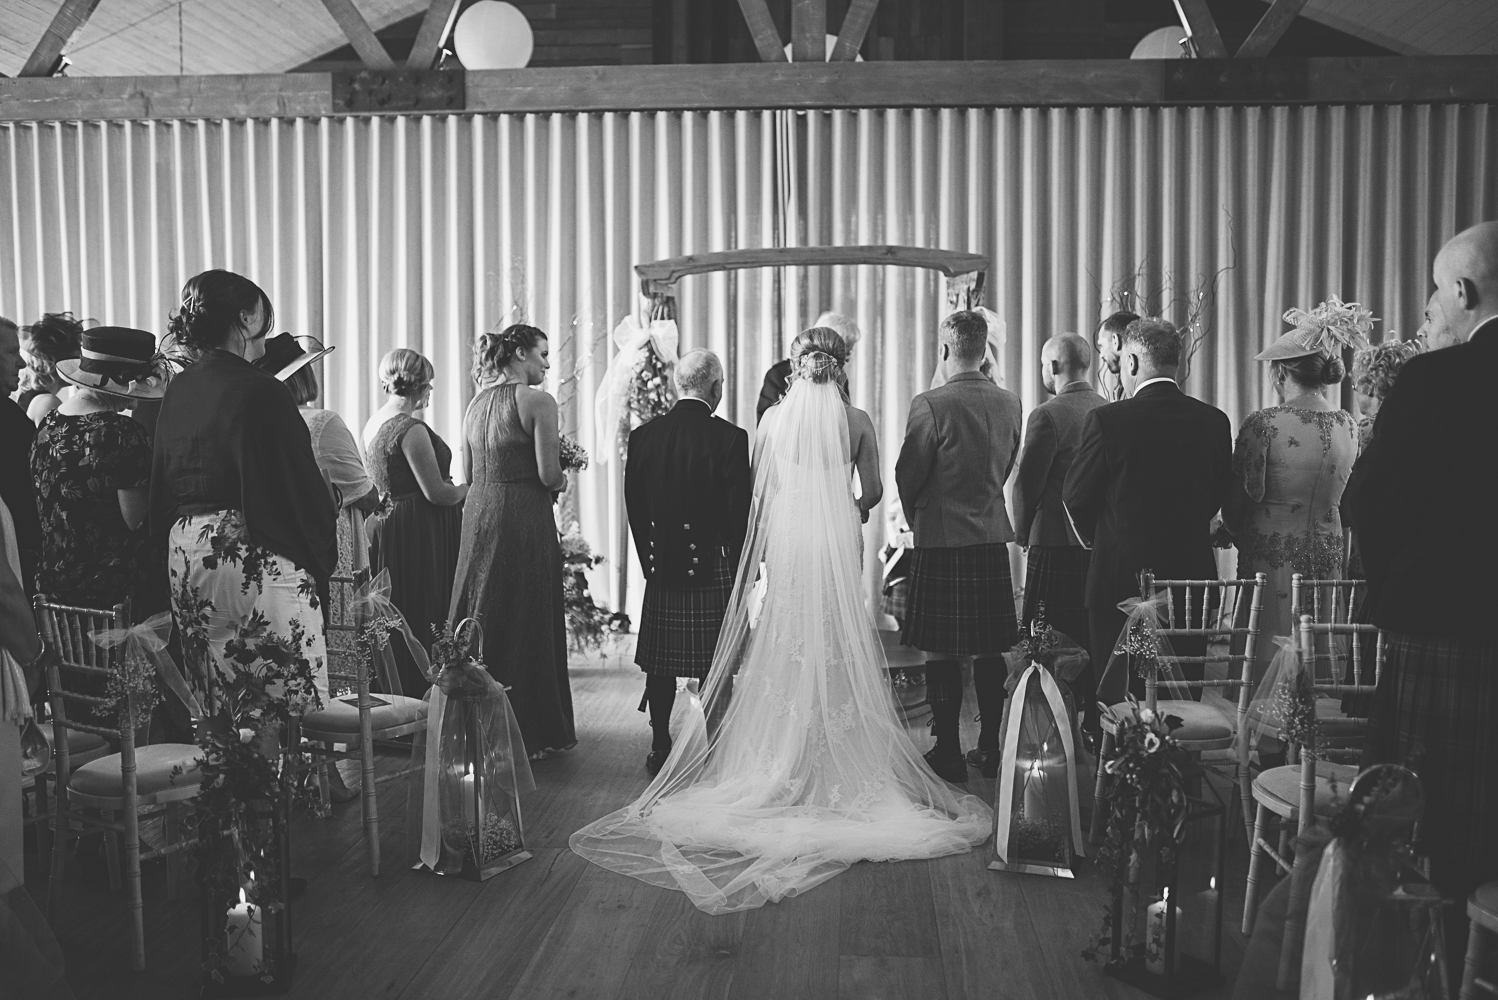 weddings at the barn at barra, the barn at barra castle, barn at barra, wedding photographer the barn at barra, the barn at barra wedding, the barn at barra, wedding photographer aberdeenshire